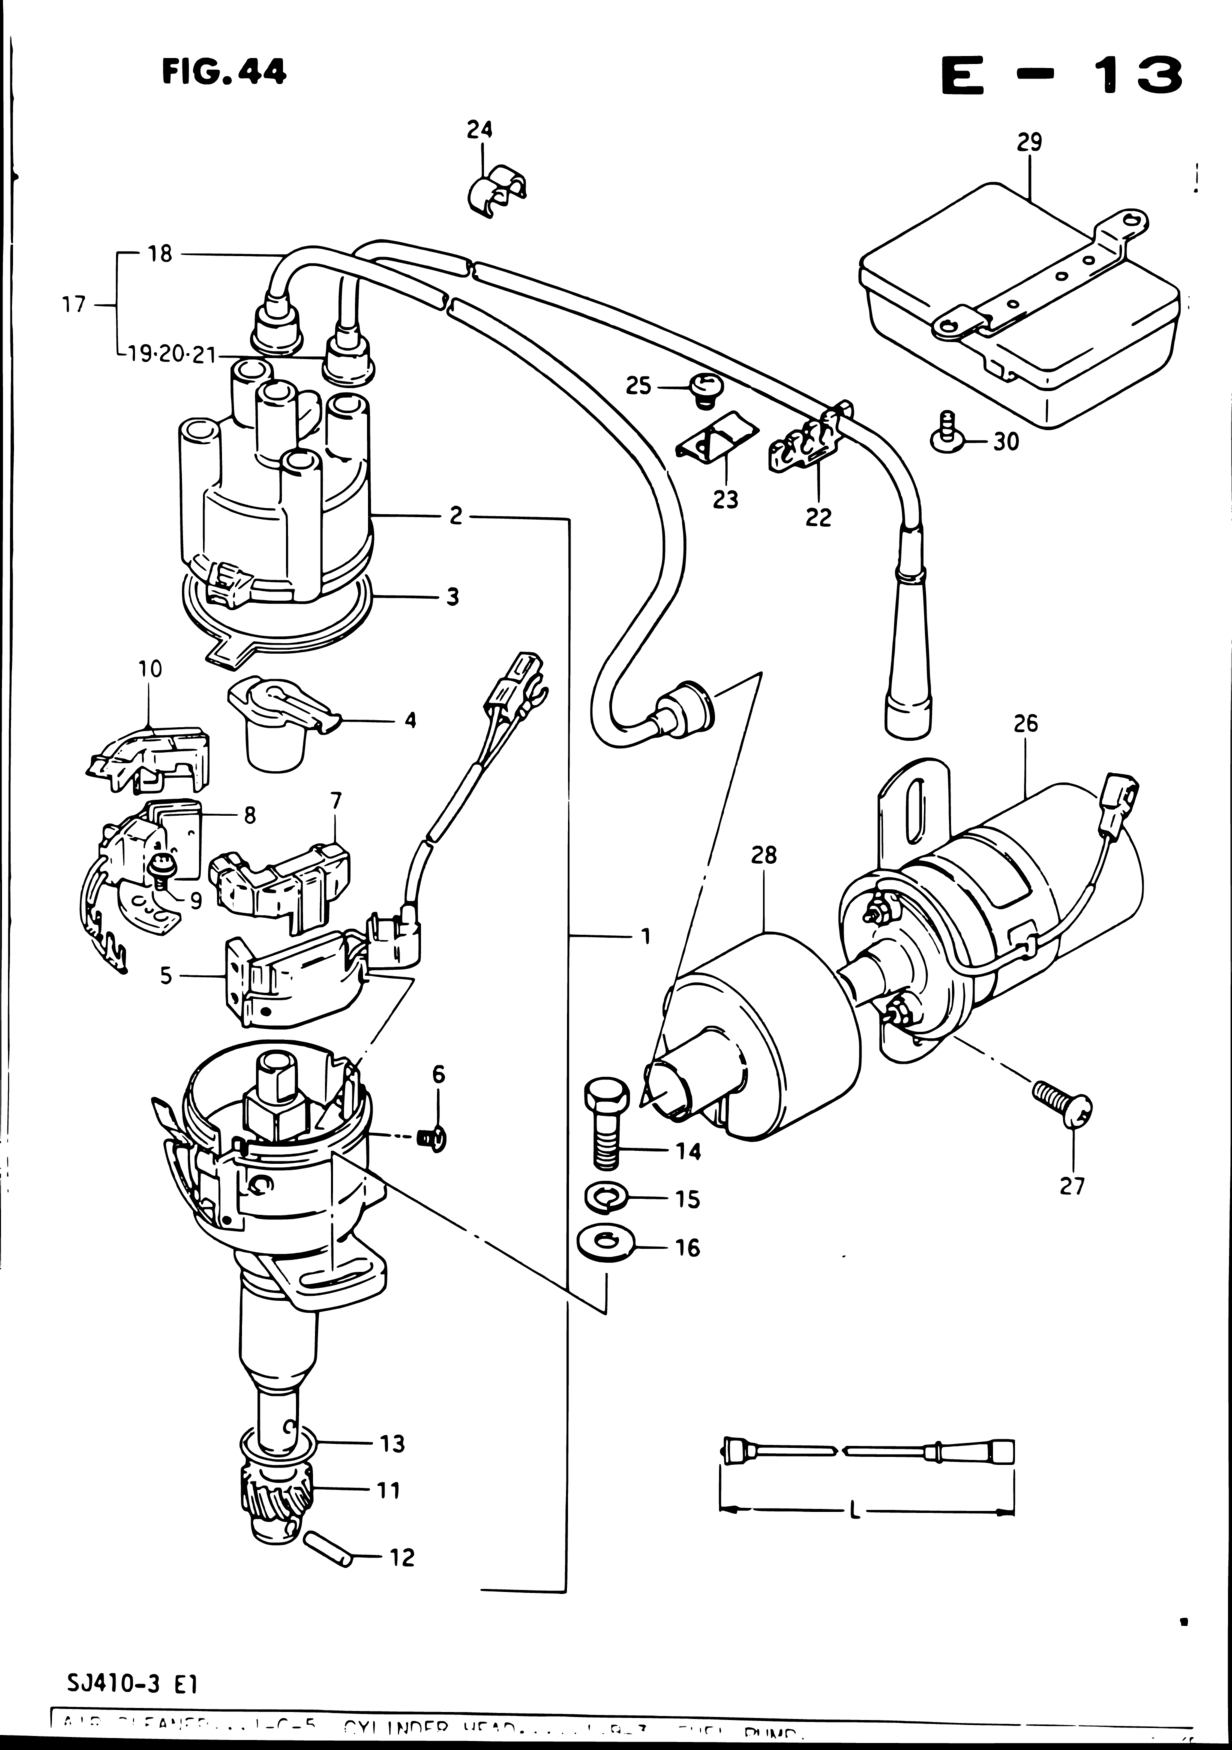 Middle East Samurai Sj Sj410q 3 E01 Engine Electrical 44 1986 Suzuki Wiring Diagram Parts